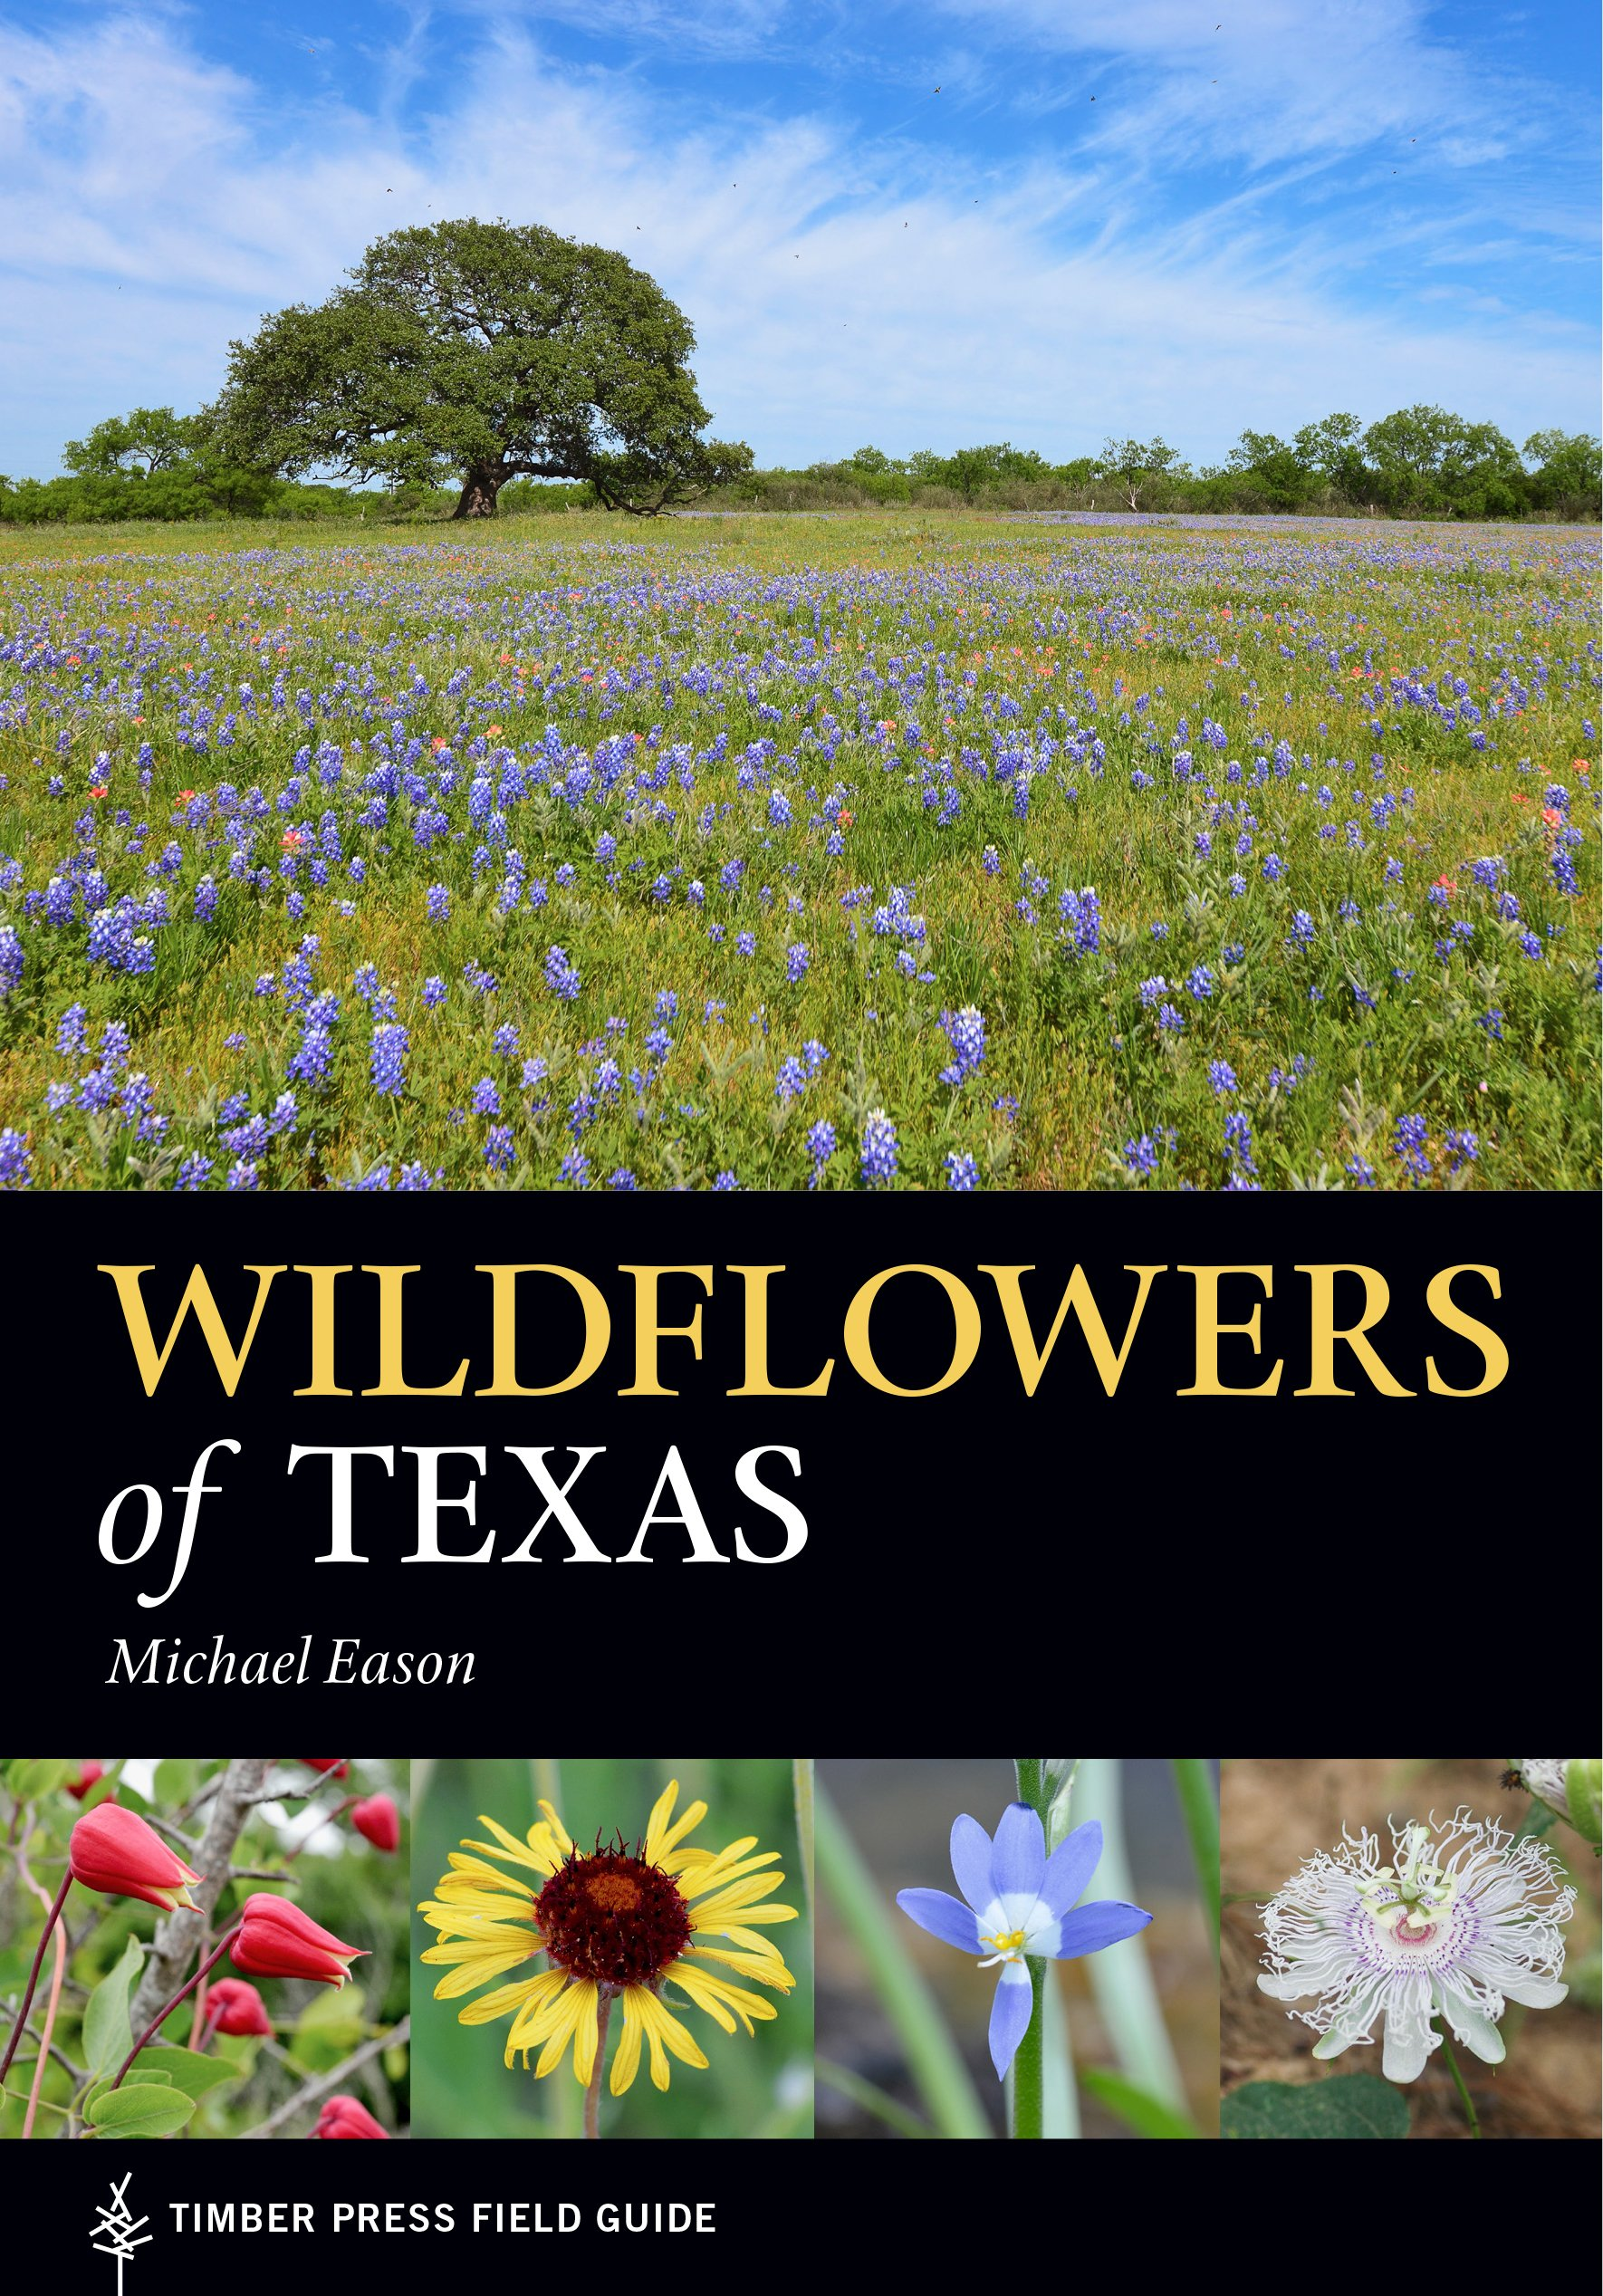 Wildflowers Of Texas A Timber Press Field Guide Michael Eason